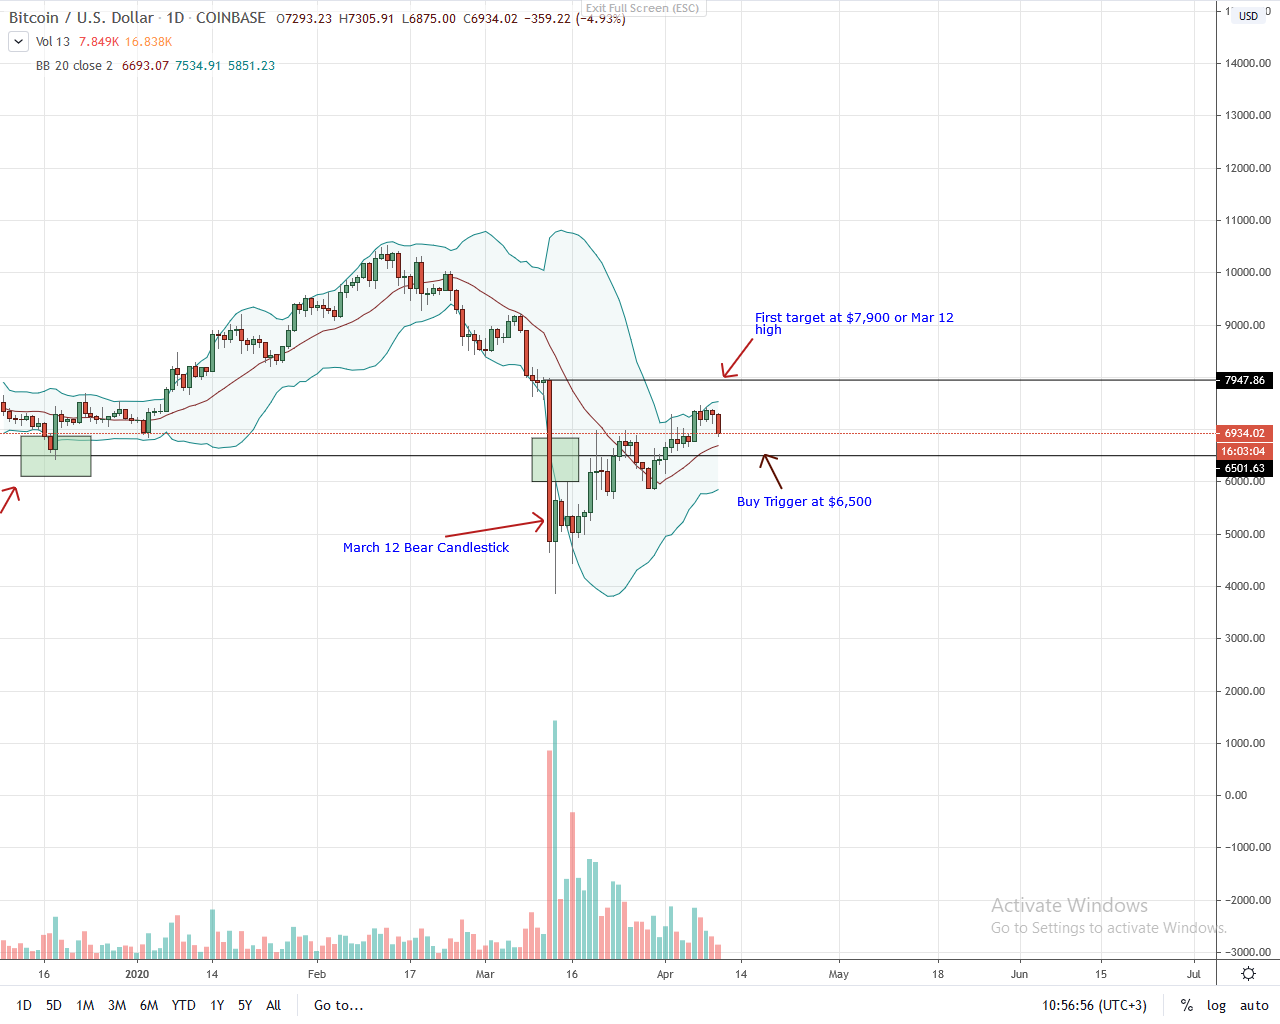 Bitcoin Daily Chart for Apr 10